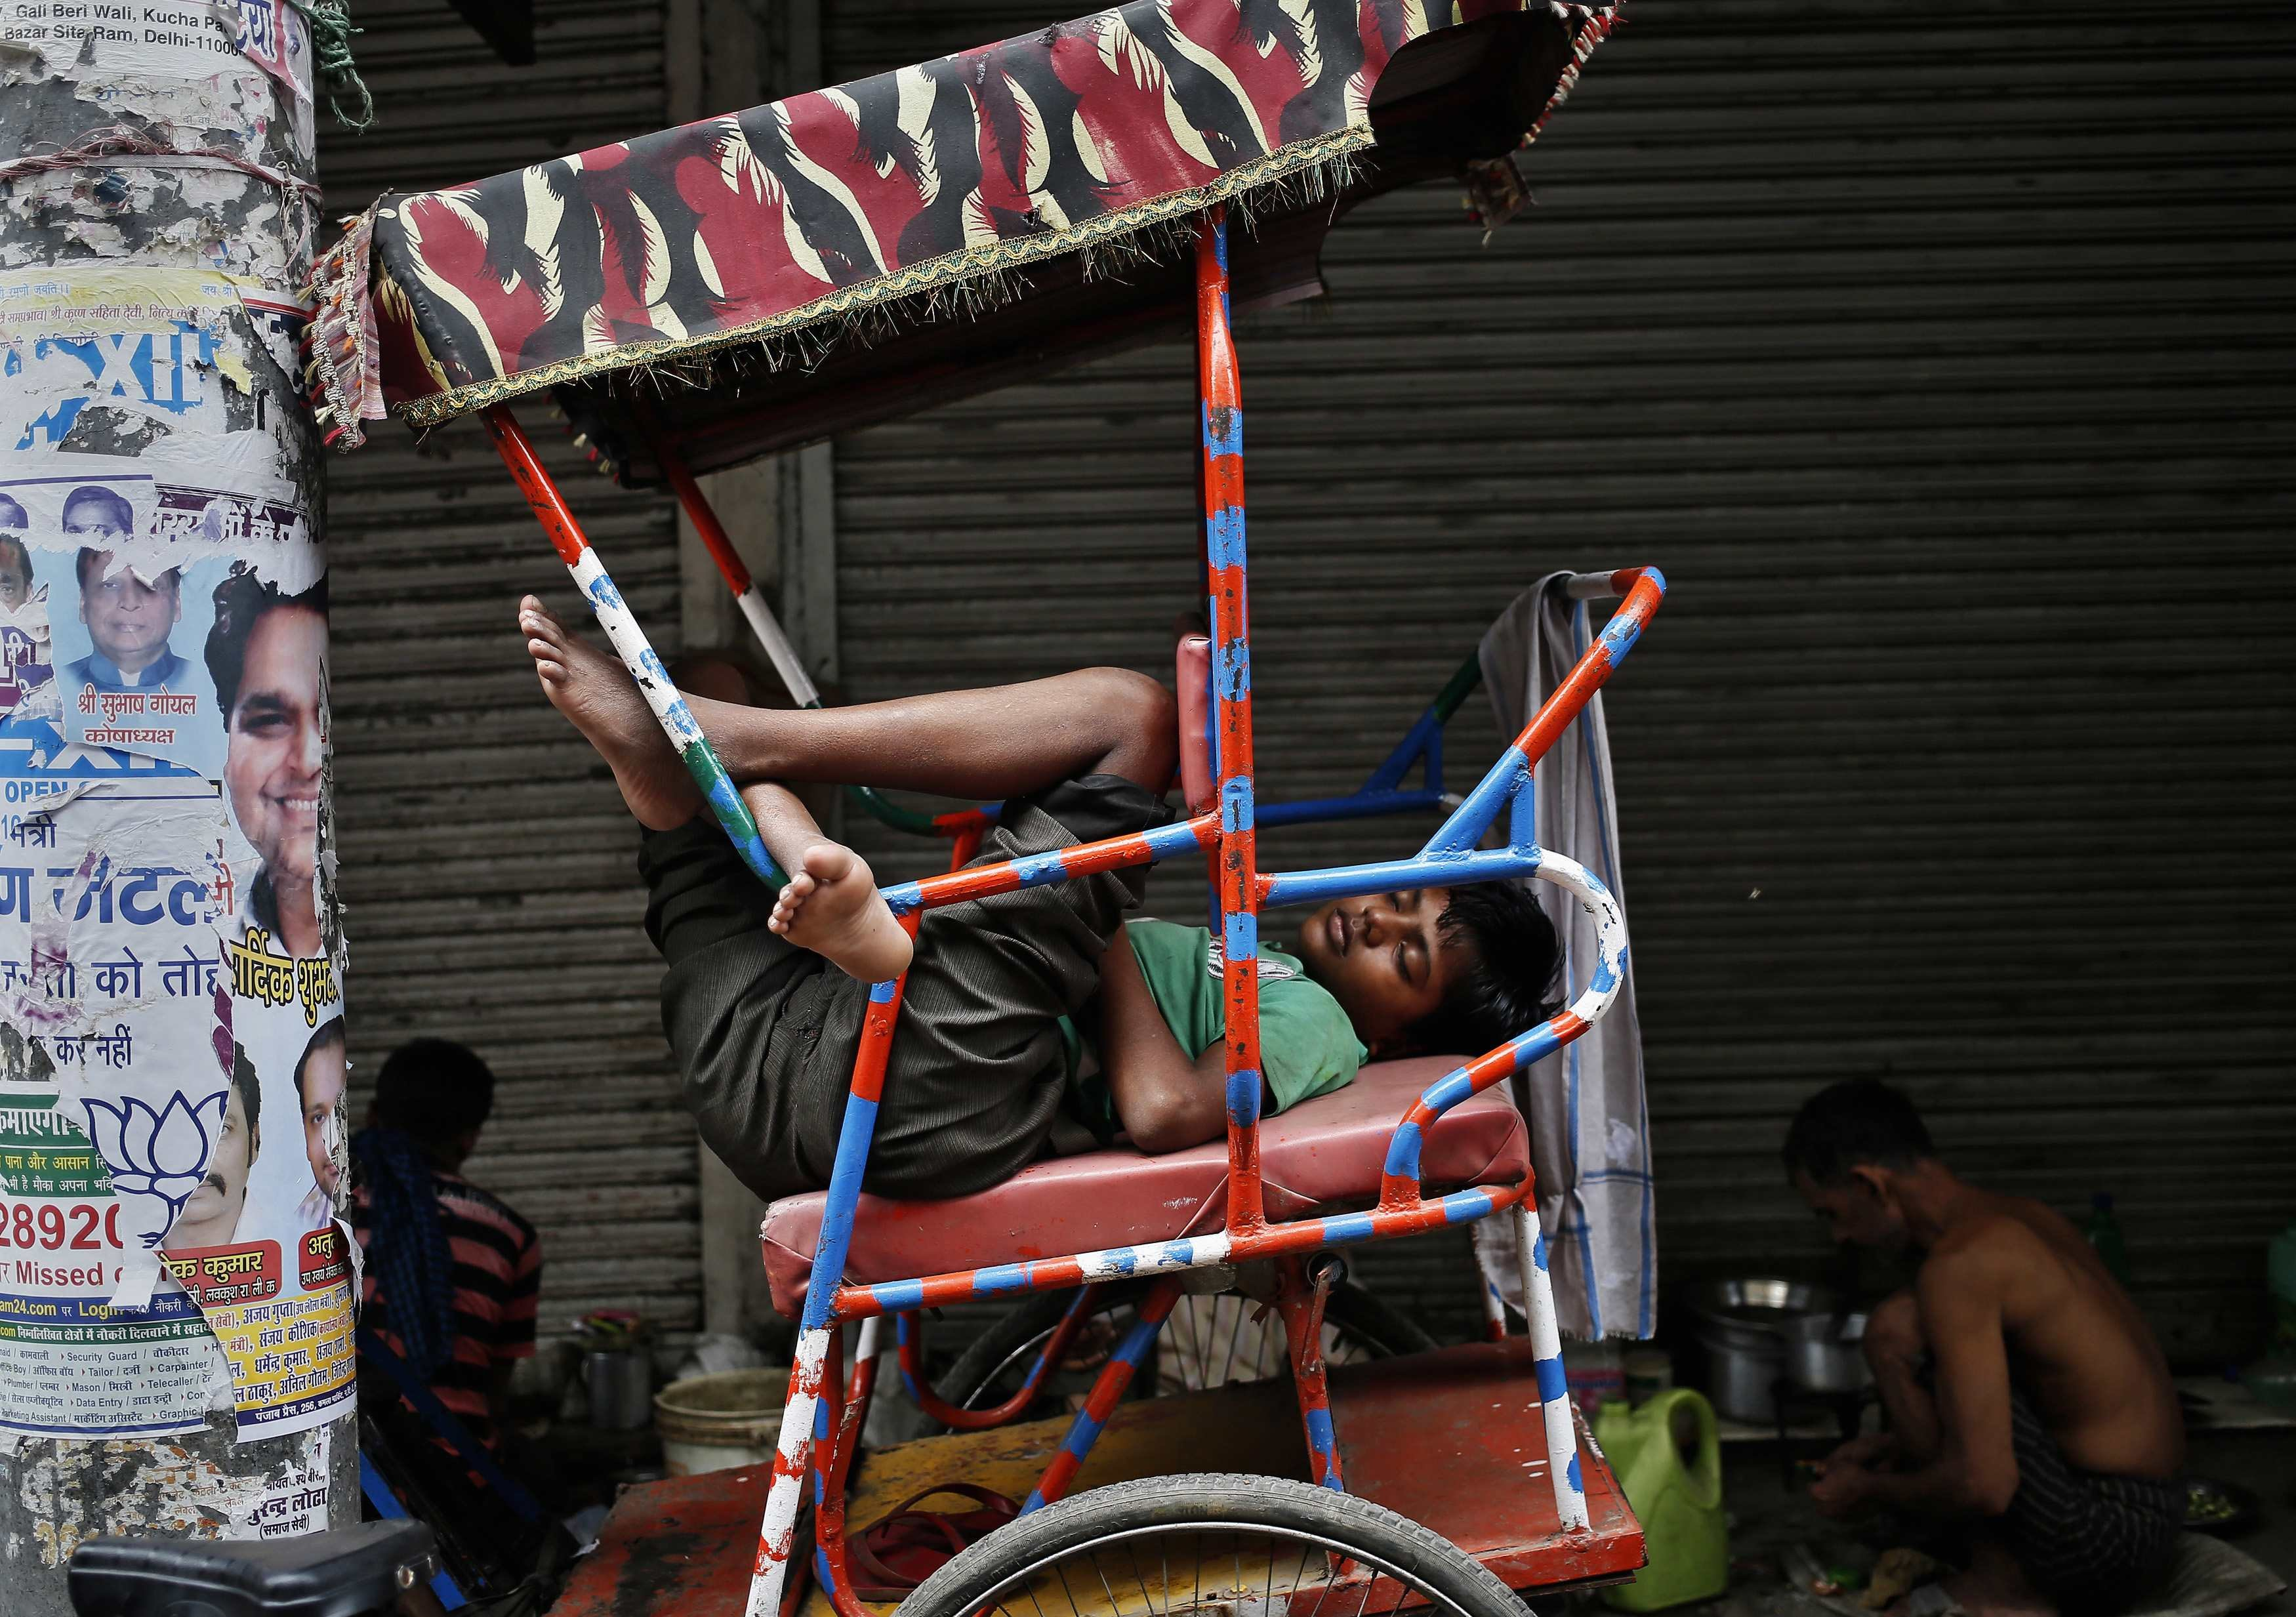 Aug. 8, 2014. A man takes a nap on a cycle rickshaw along a roadside in the old quarters of Delhi.